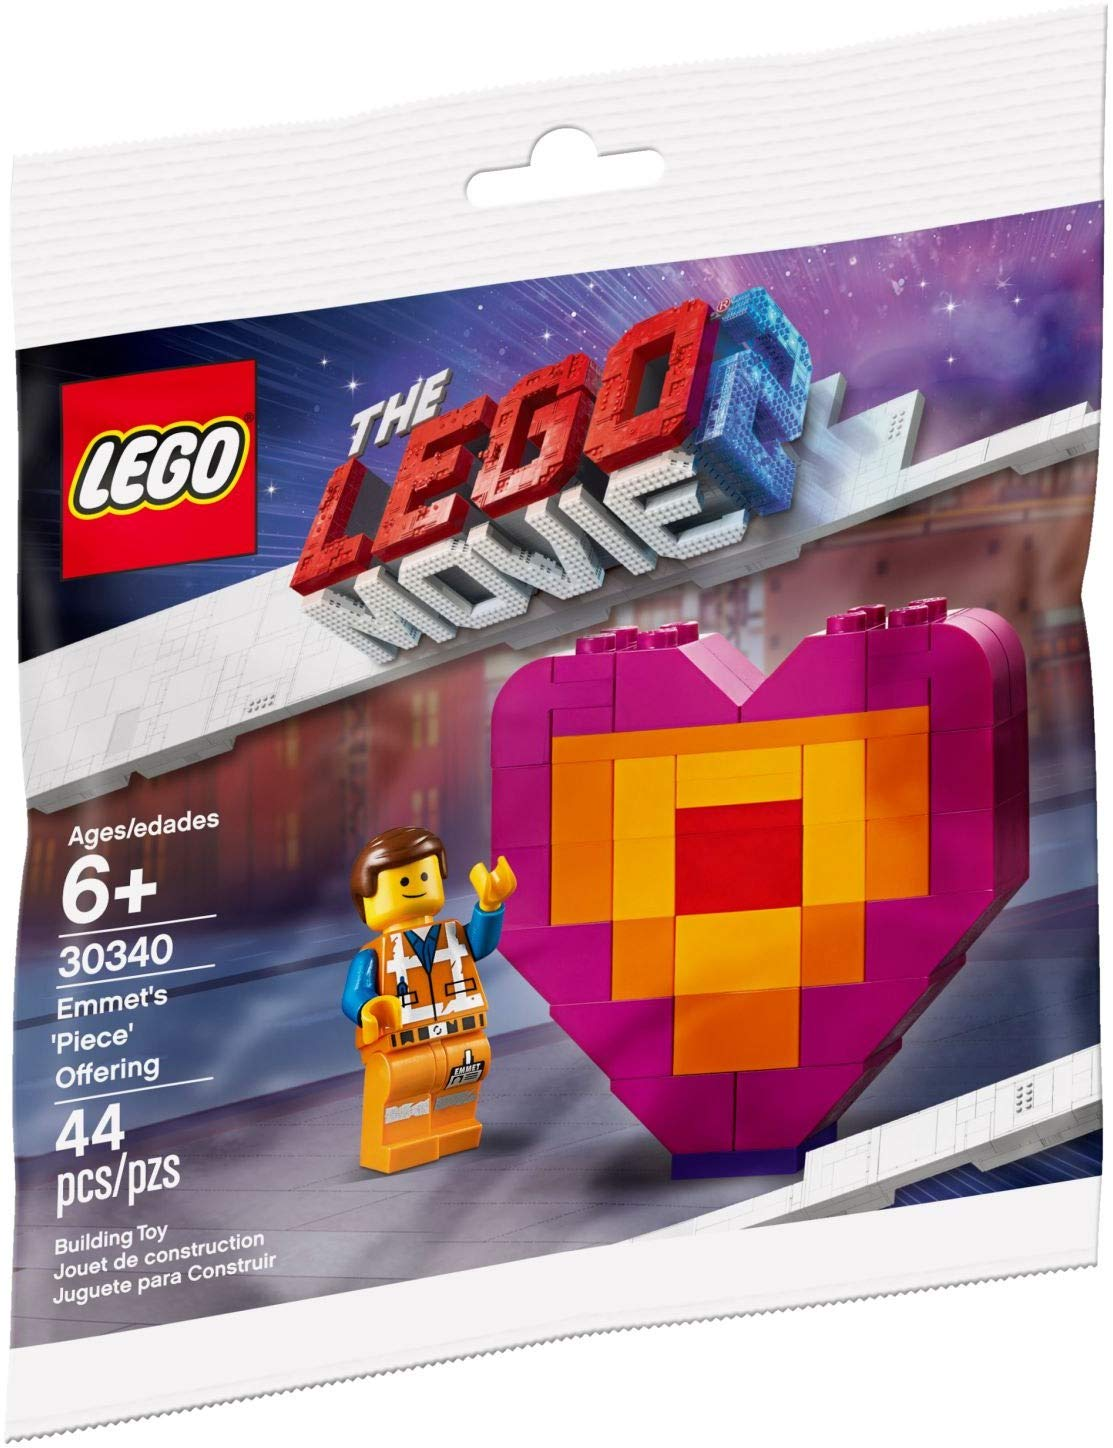 New LEGO The Lego Movie 2 Emmet/'s Piece Offering 30340 44 pcs Ages 6